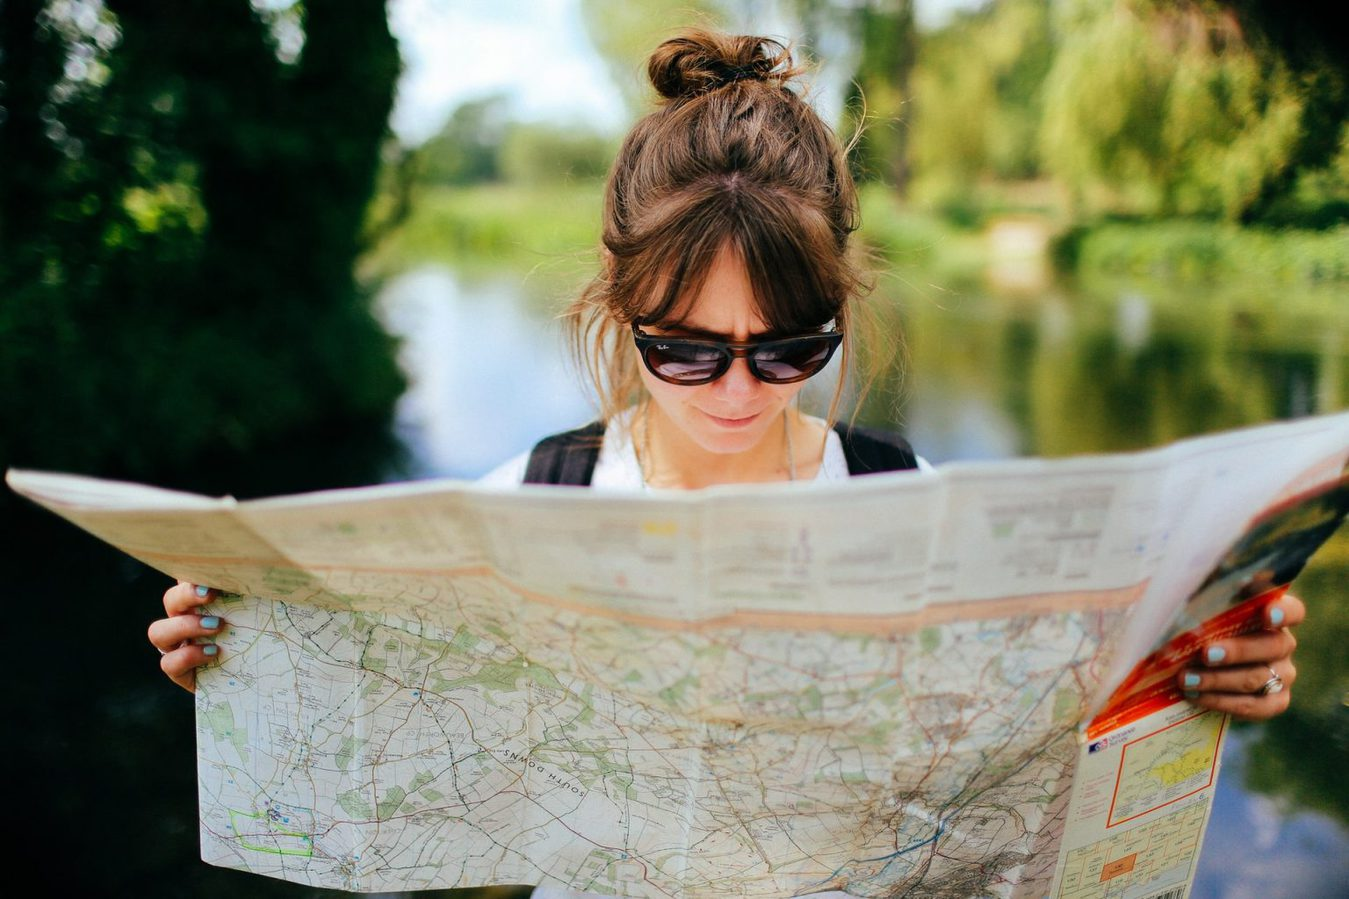 A girl reading a map outside